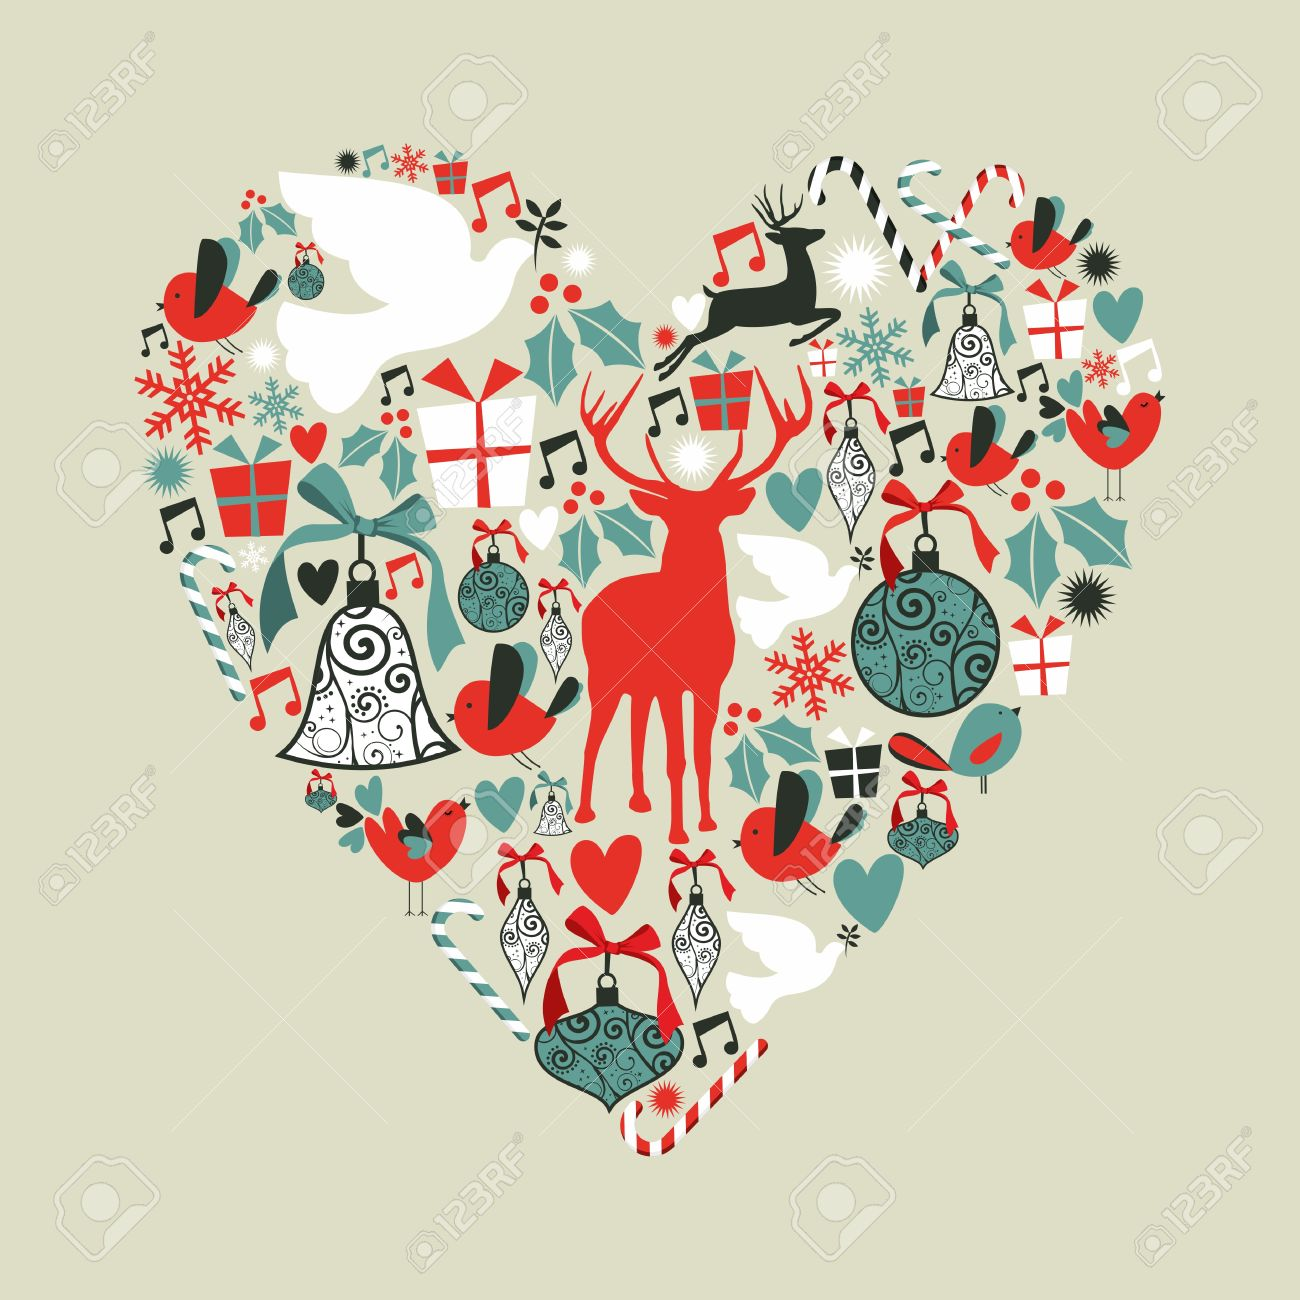 Christmas icons set in love heart shape greeting card background christmas icons set in love heart shape greeting card background illustration layered for easy manipulation kristyandbryce Choice Image